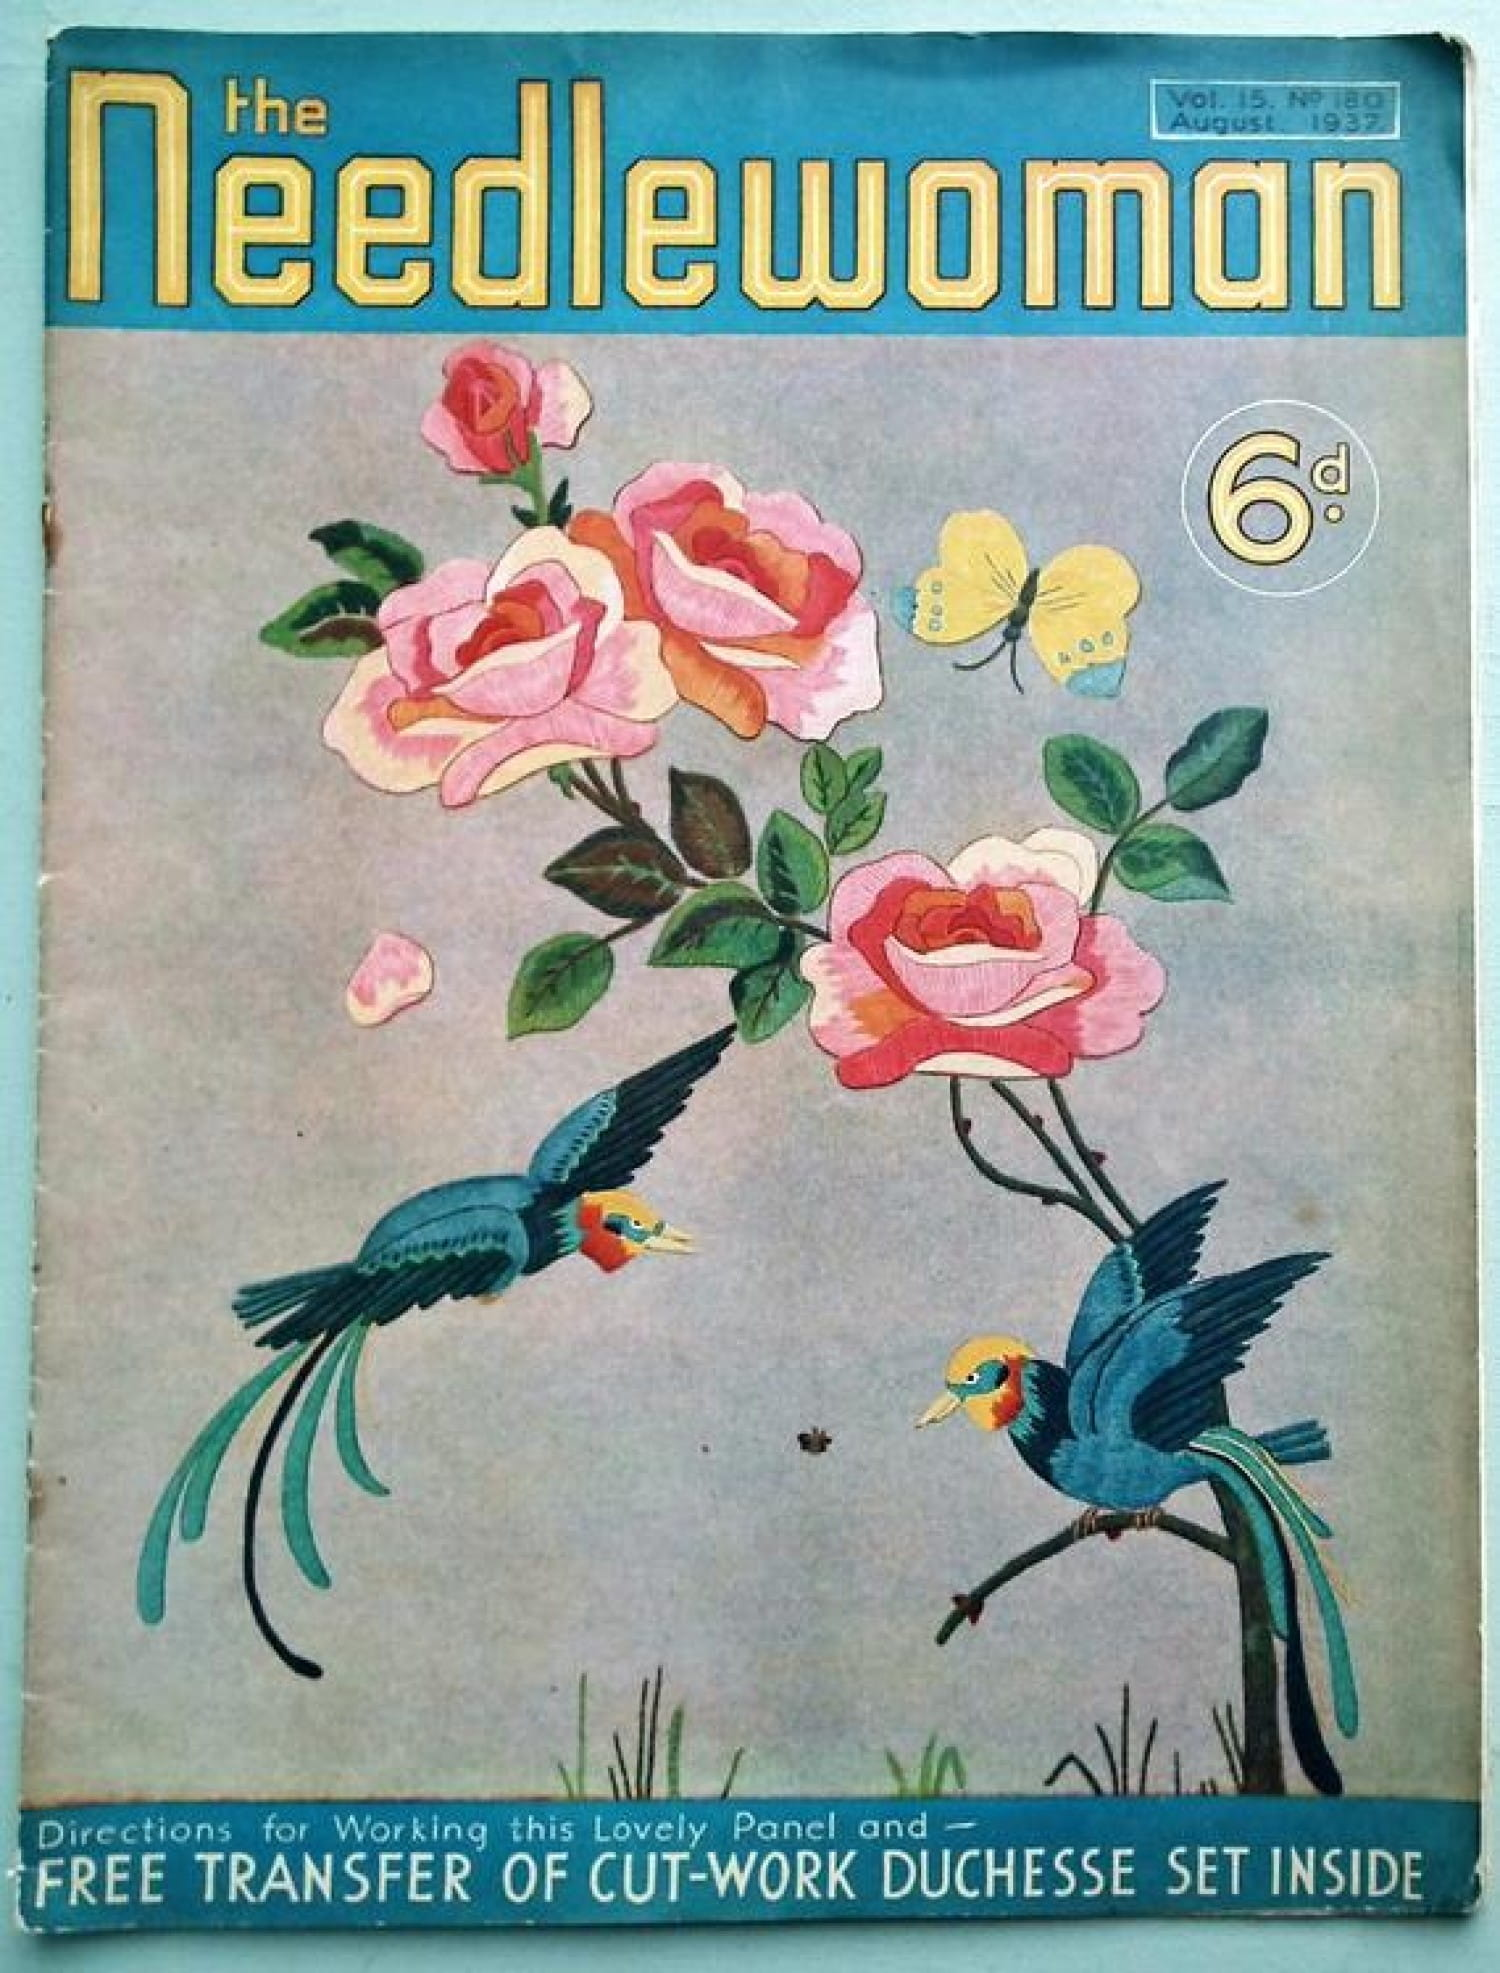 The August 1937 copy of Needlewoman, with the same masthead, which would suggest the pics are more 1930s, than 1940s